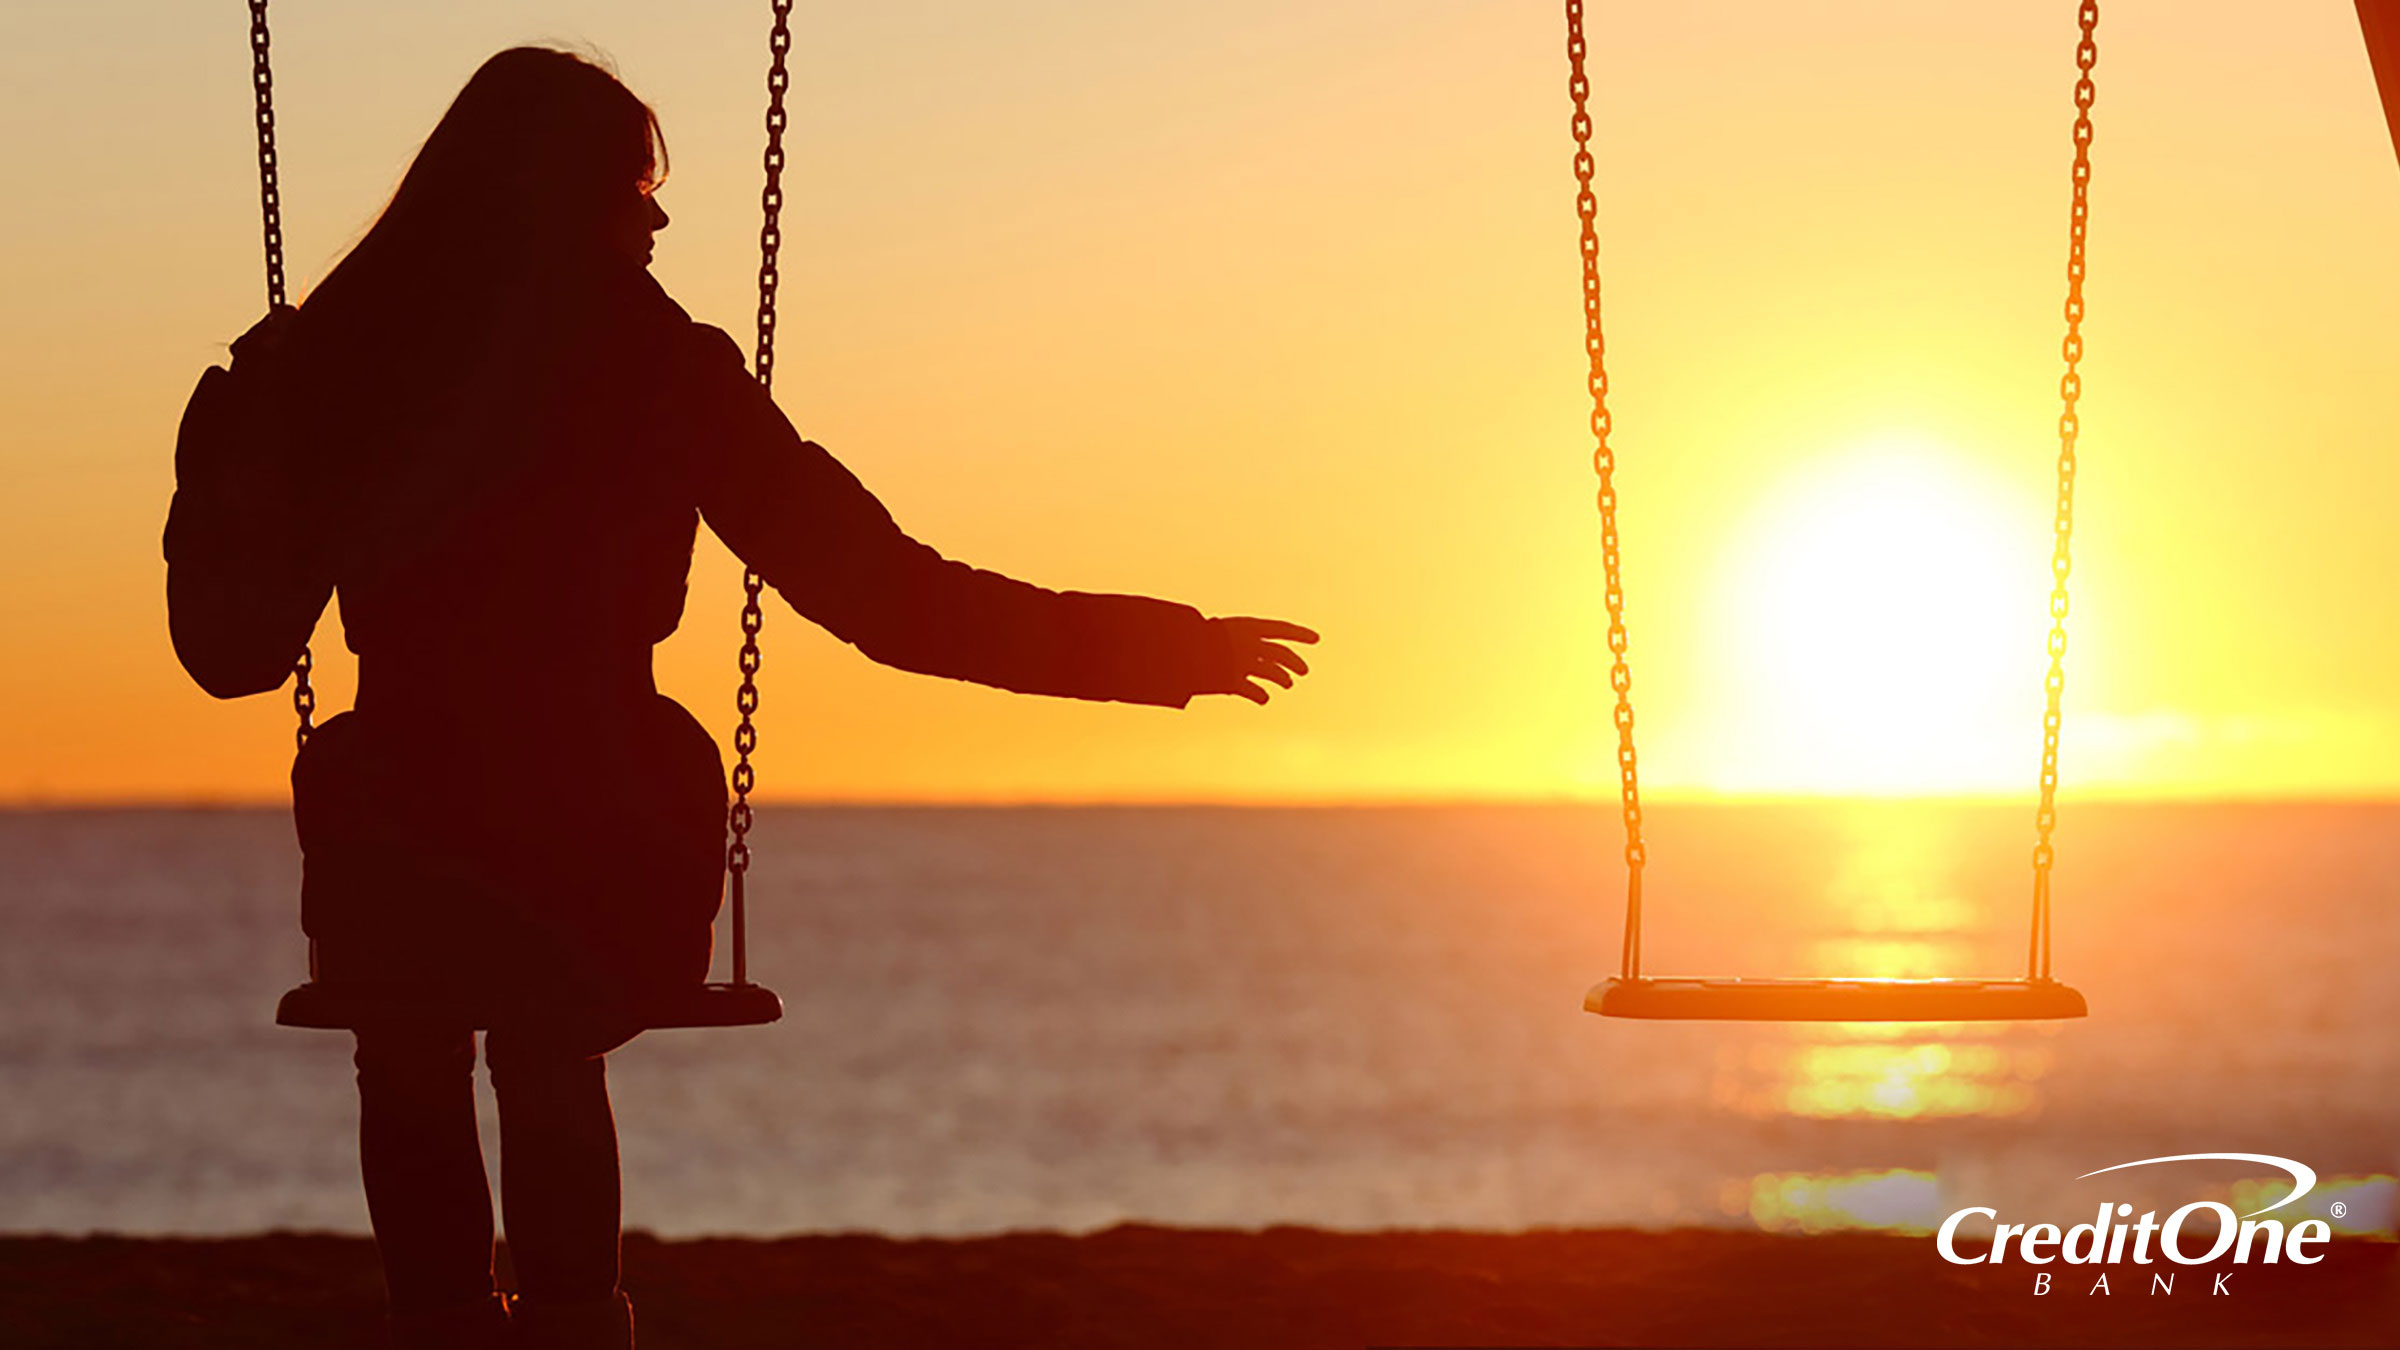 Woman on swings contemplating the loss of a loved one